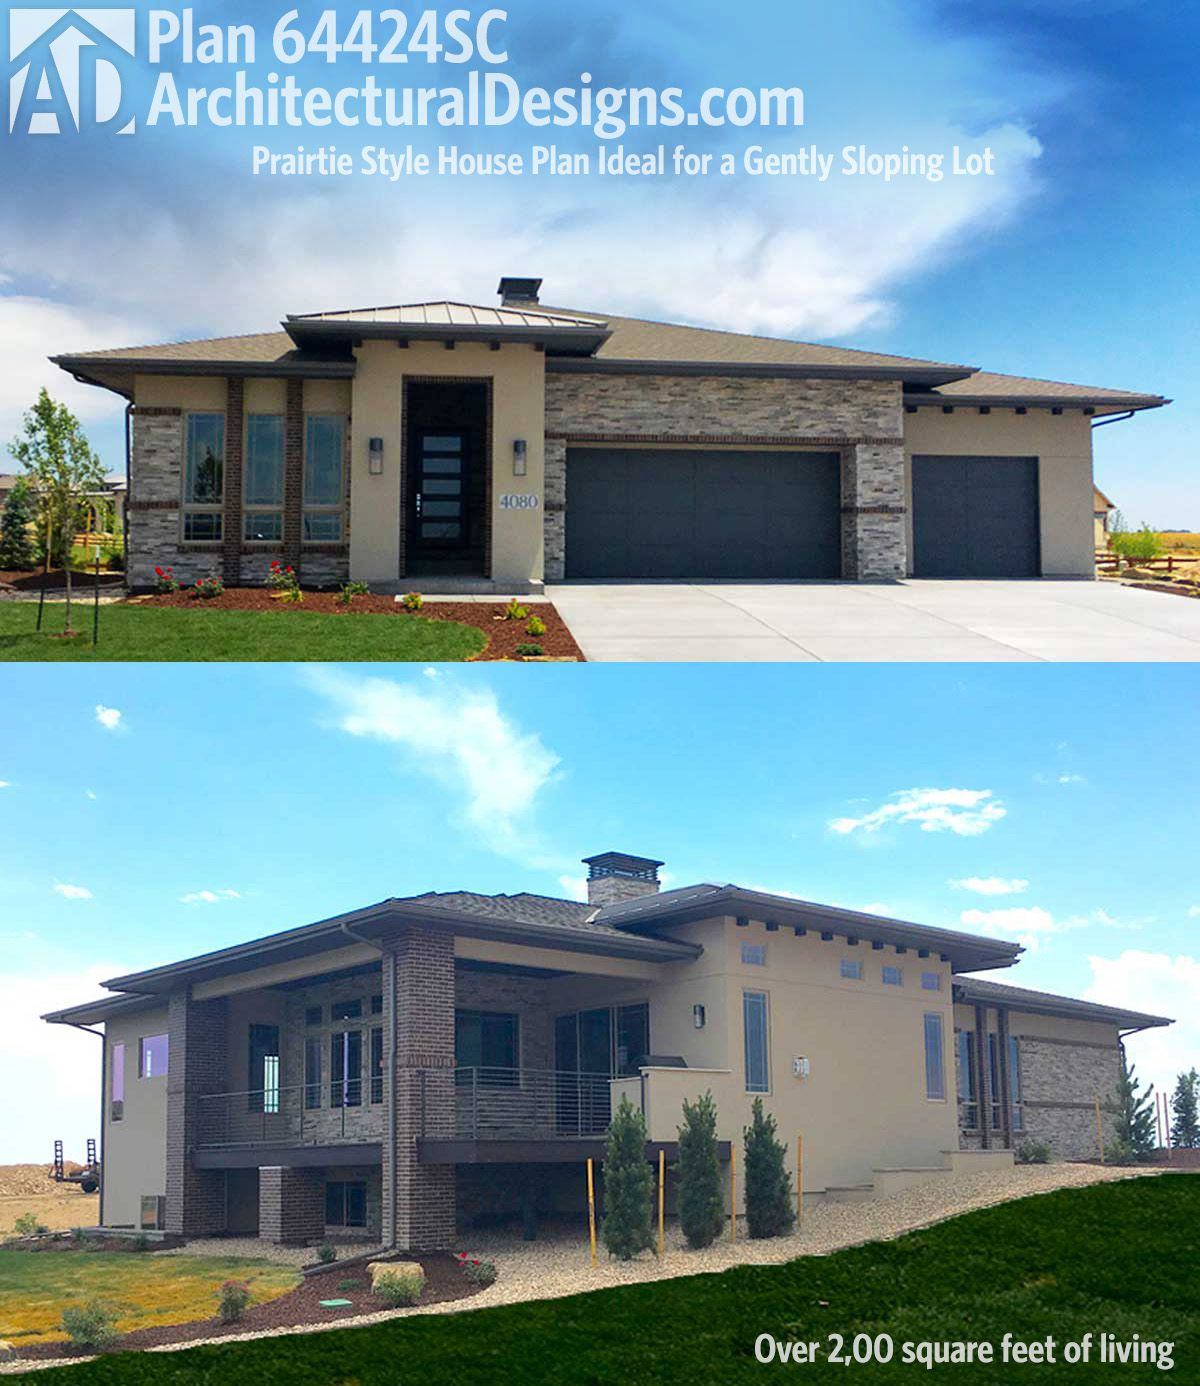 plan 64424sc prairie style house plan ideal for a gently sloping